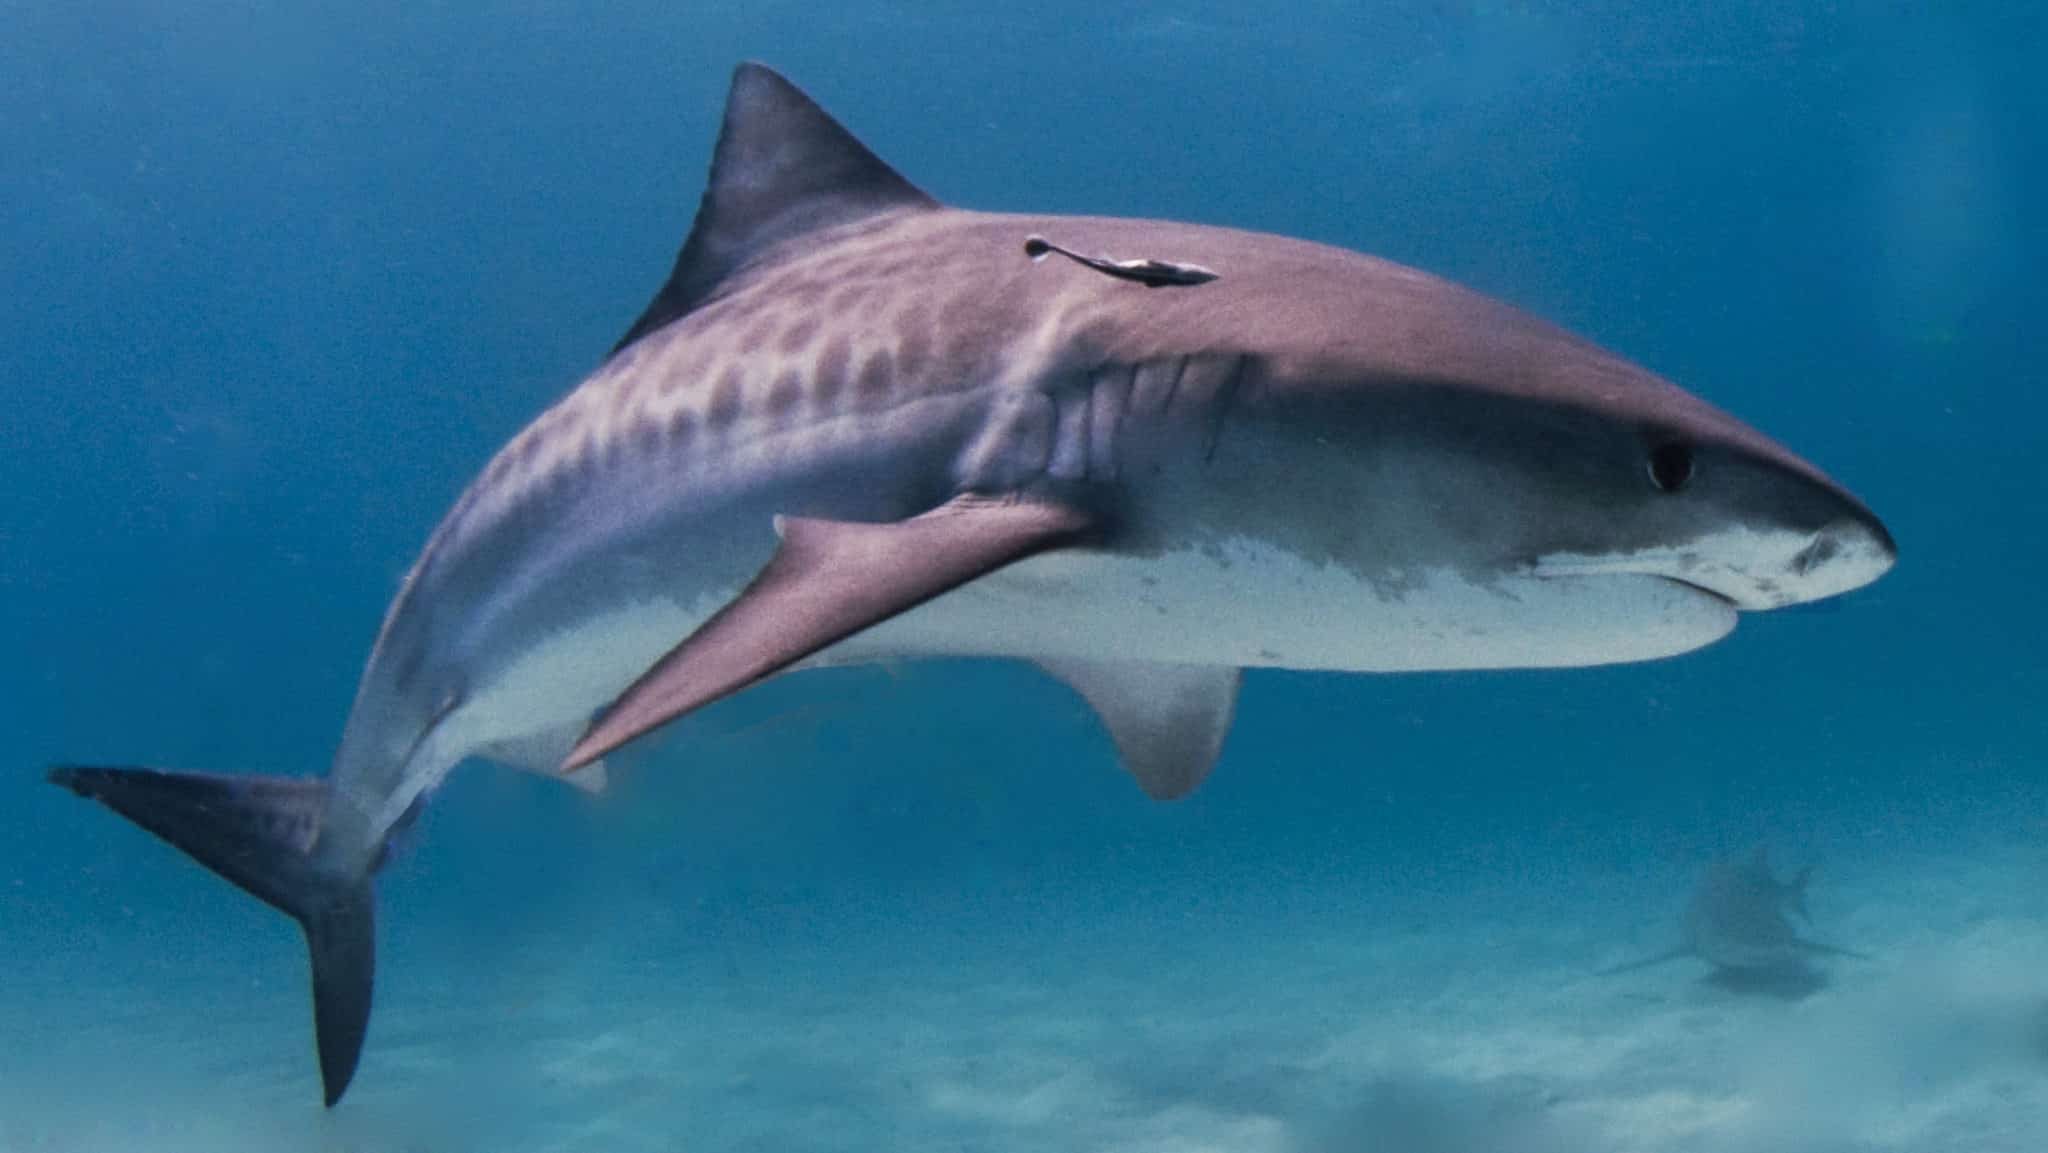 The large shark specifies: Tiger Shark